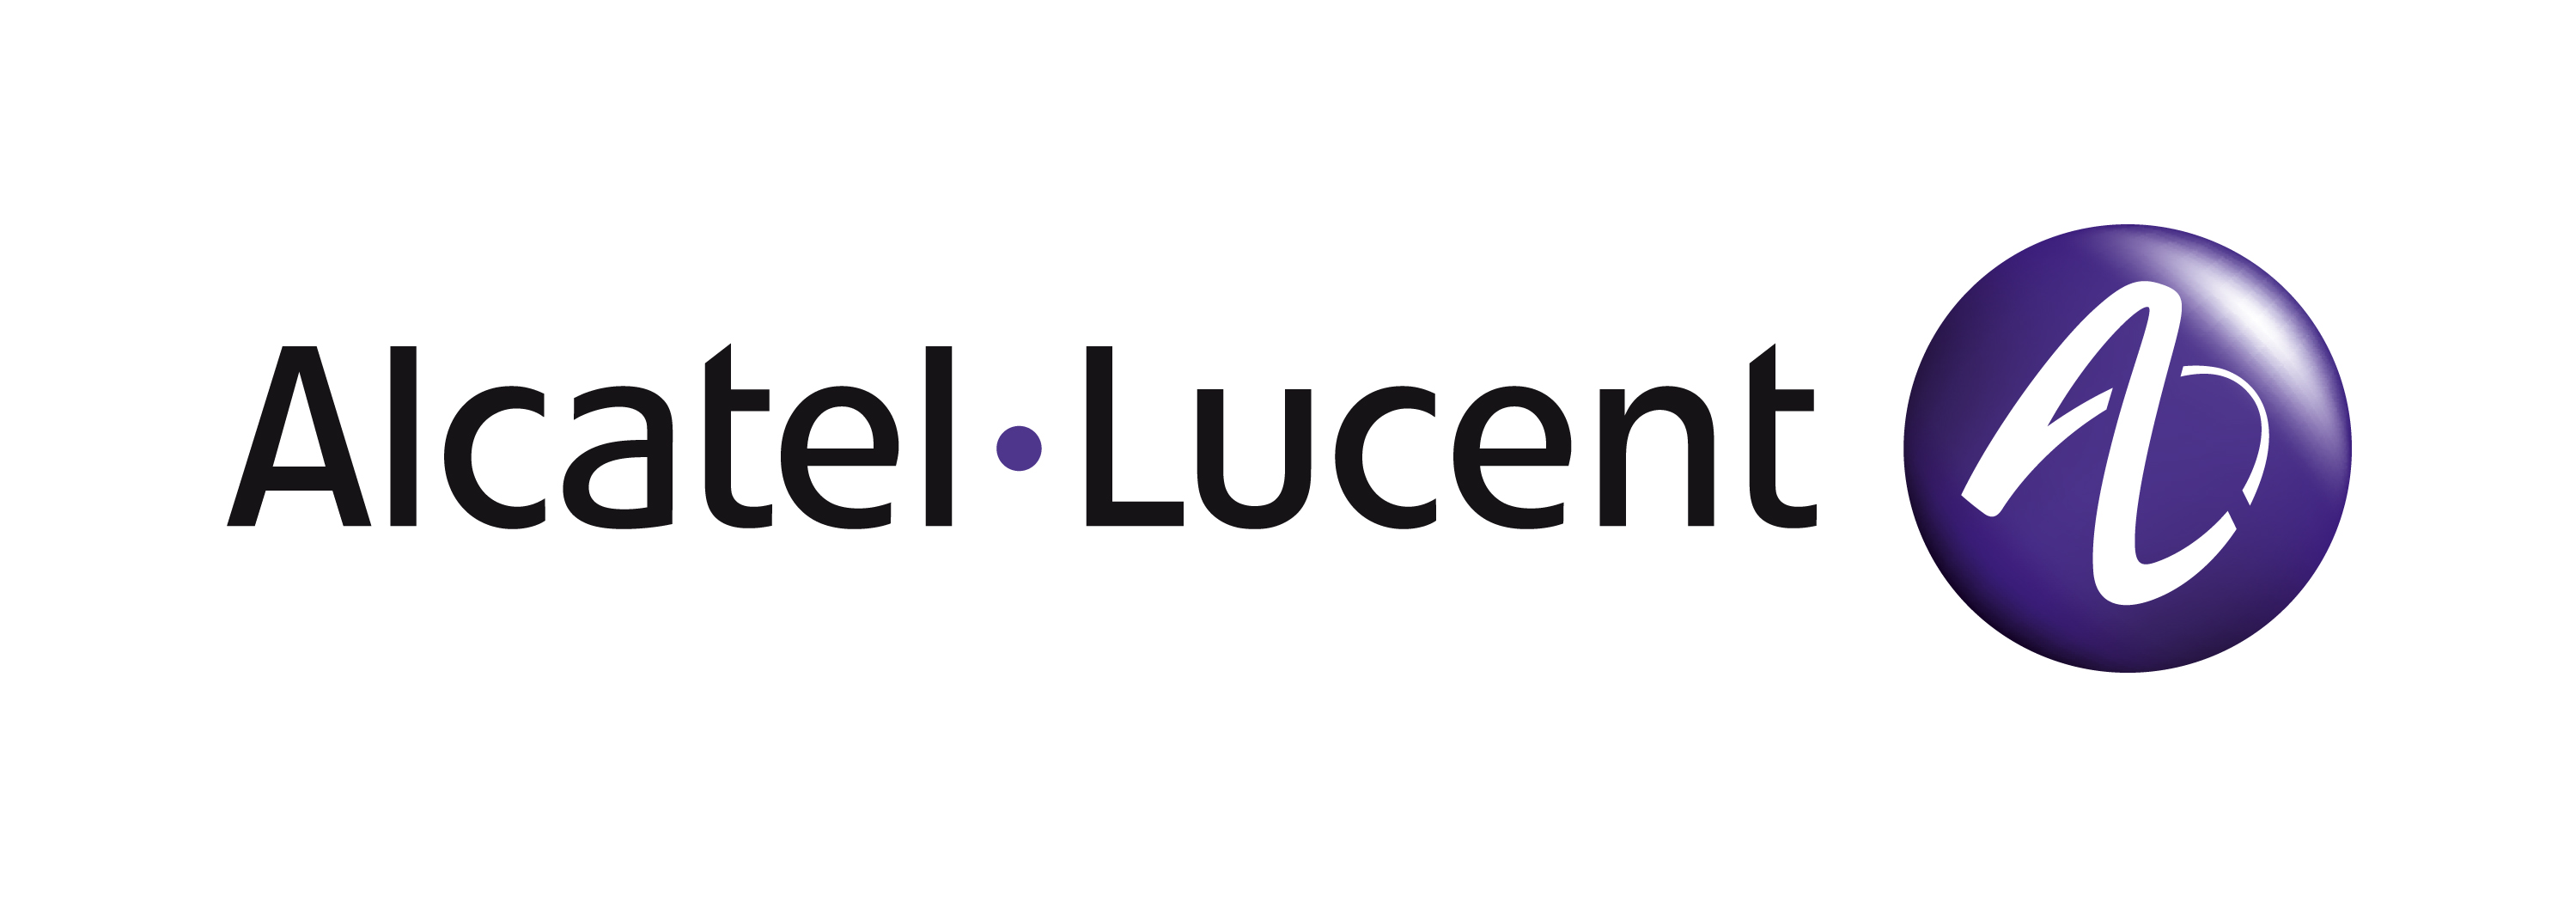 logo_Alcatel-Lucent_Large_HD